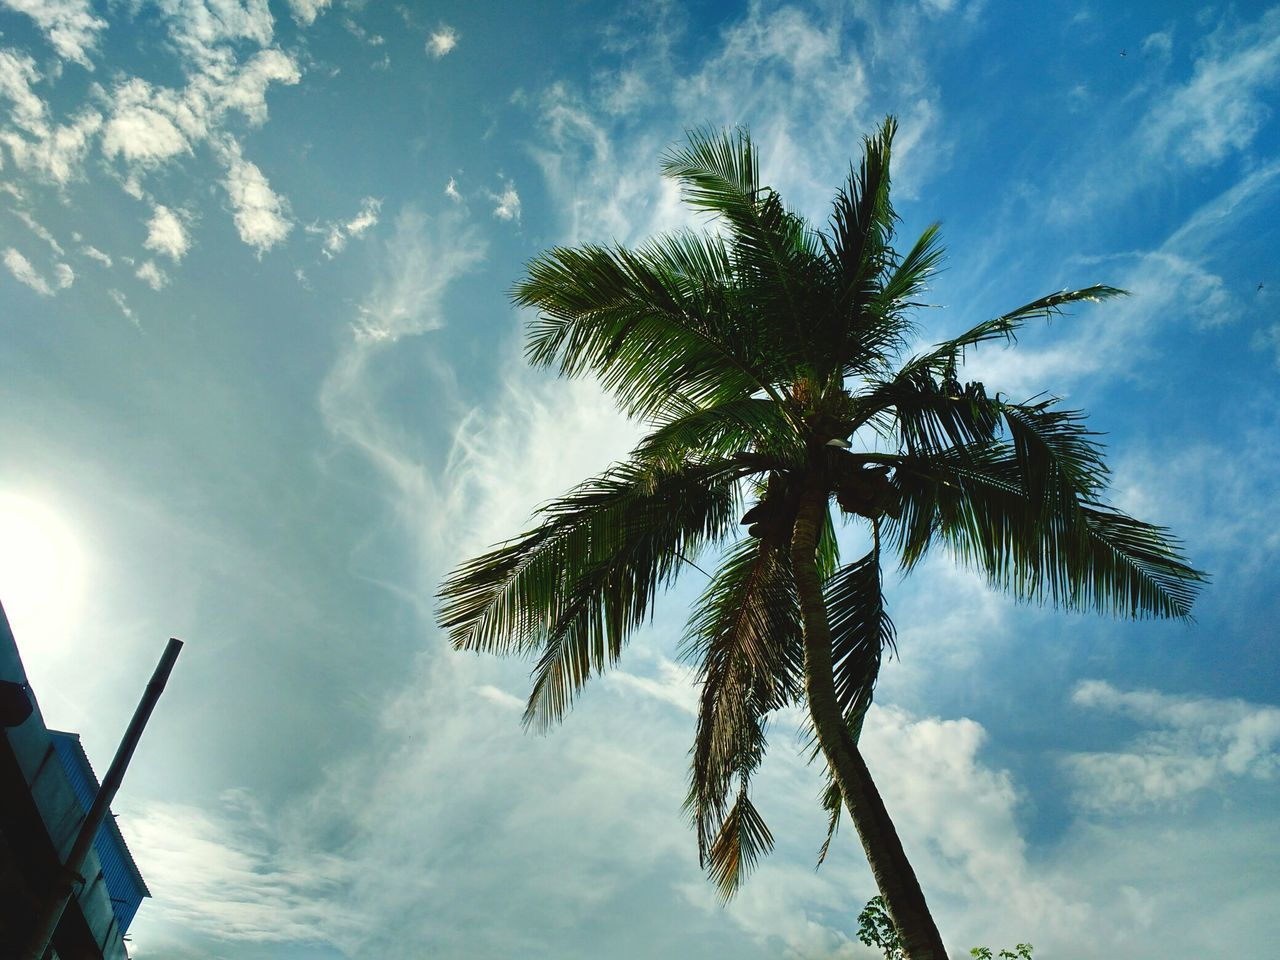 sky, palm tree, low angle view, tree, cloud - sky, day, no people, beauty in nature, nature, outdoors, growth, scenics